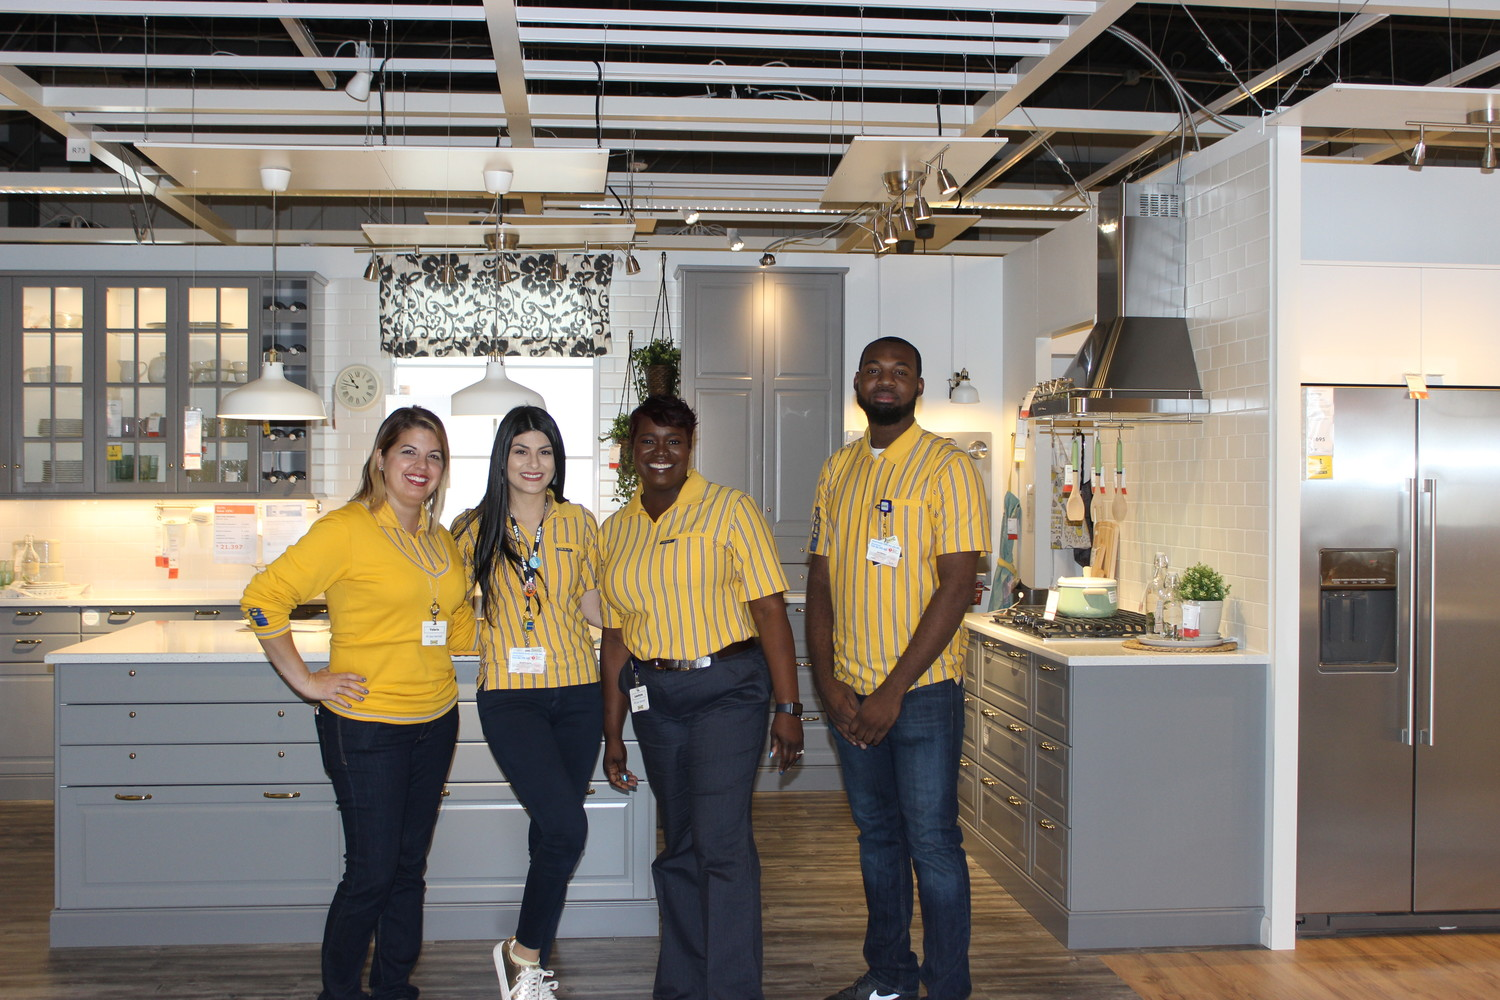 IKEA employees Mandy Michelle (from left), Val Martinez, store manager Leontyne Sykes and kitchen sales manager Eric Madison stand in front of a kitchen design display at the new Jacksonville store.